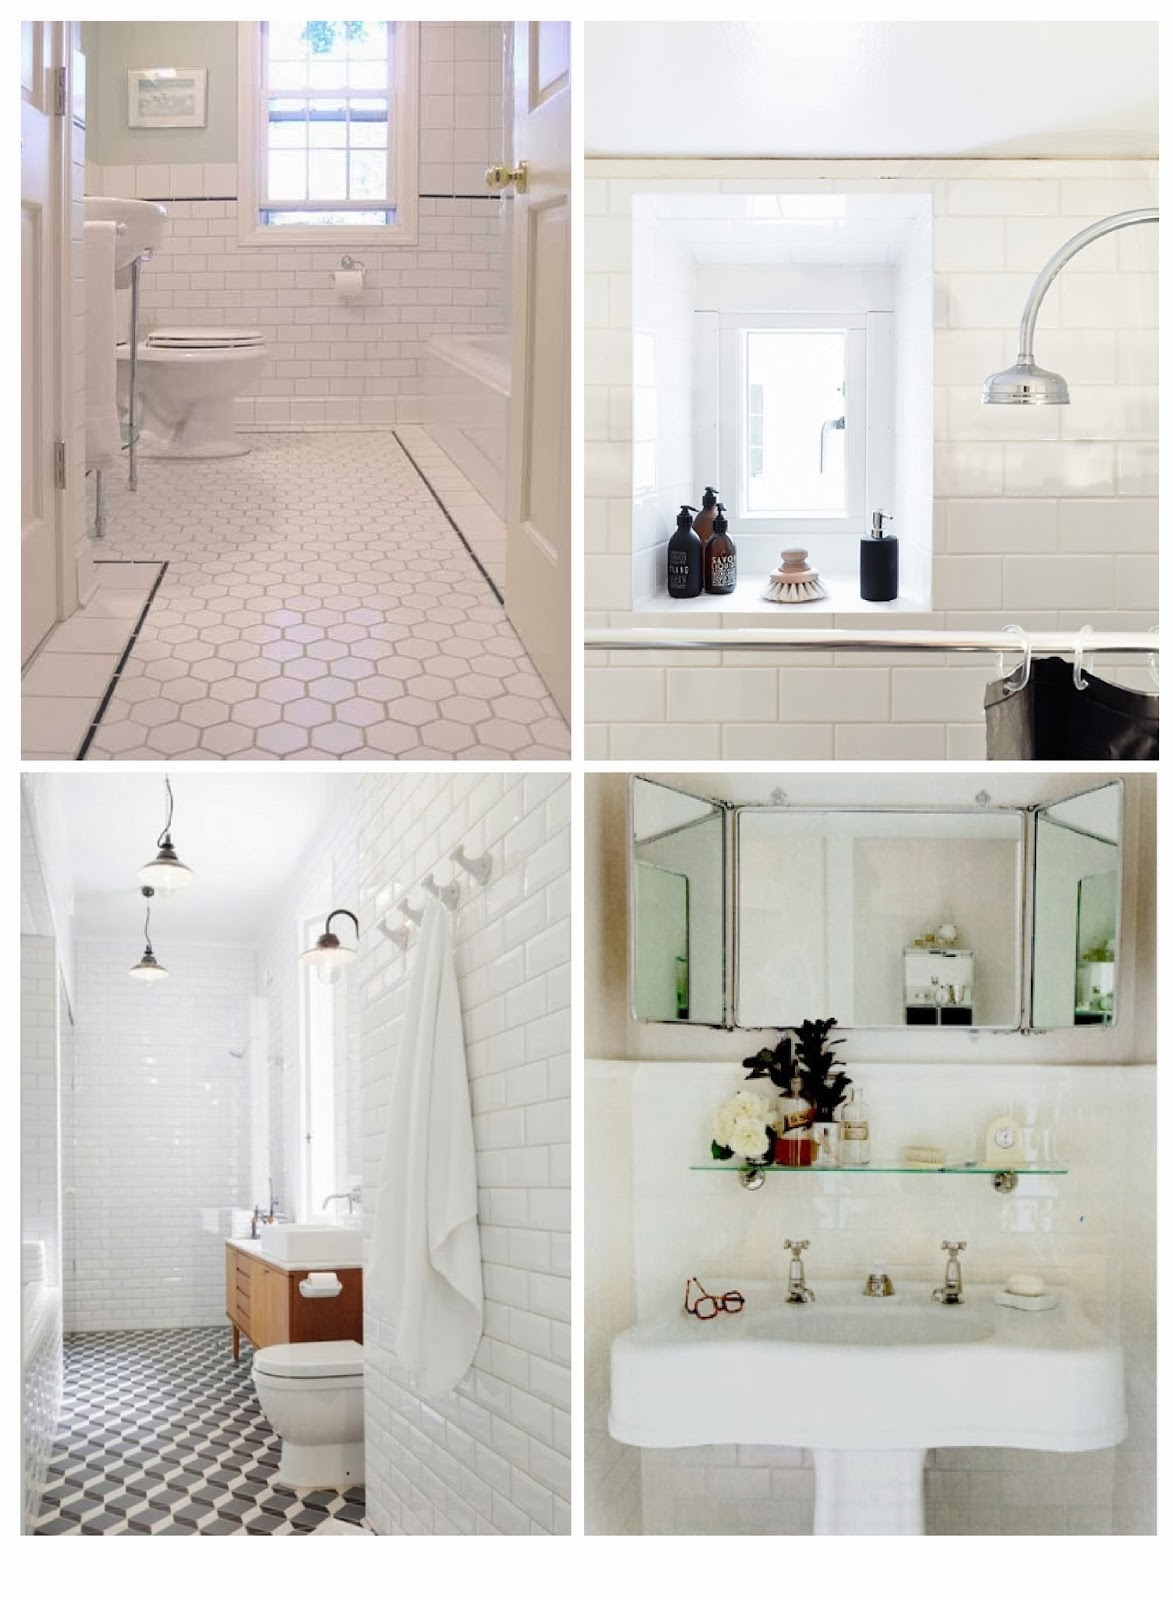 Deco bathrooms 1